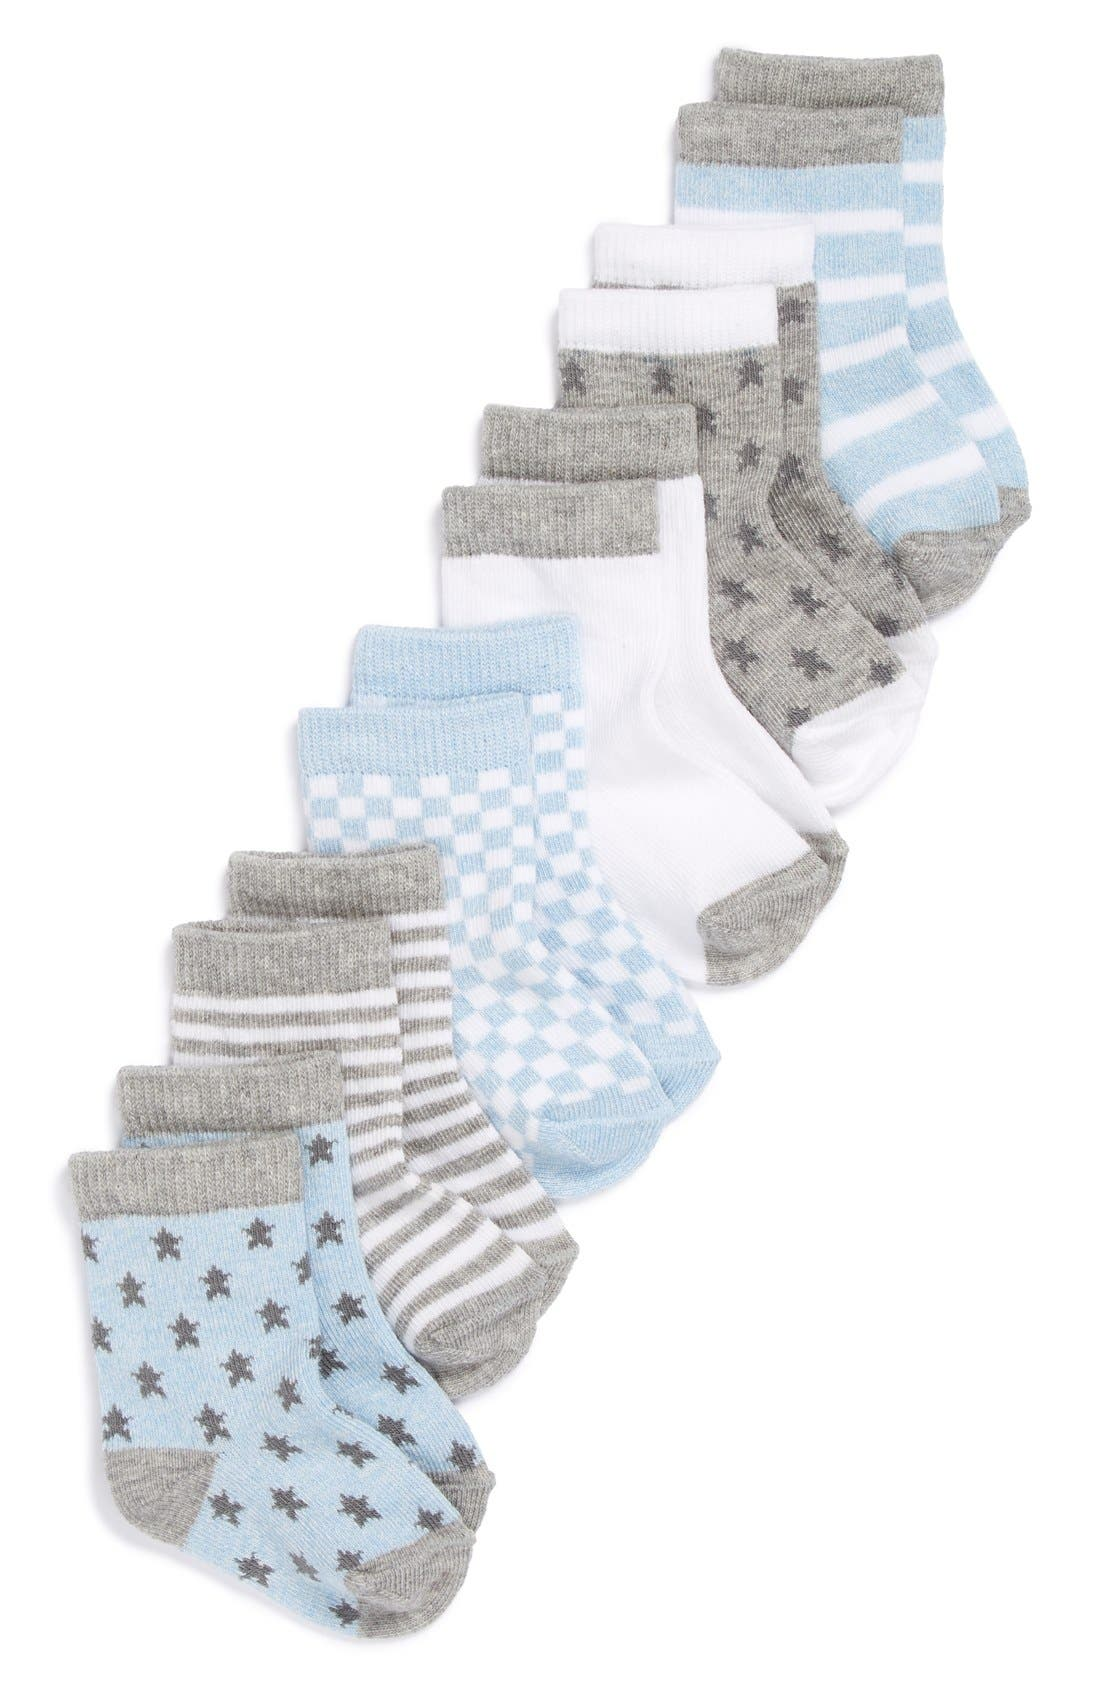 Crew Socks,                         Main,                         color, Blue Heather Pack